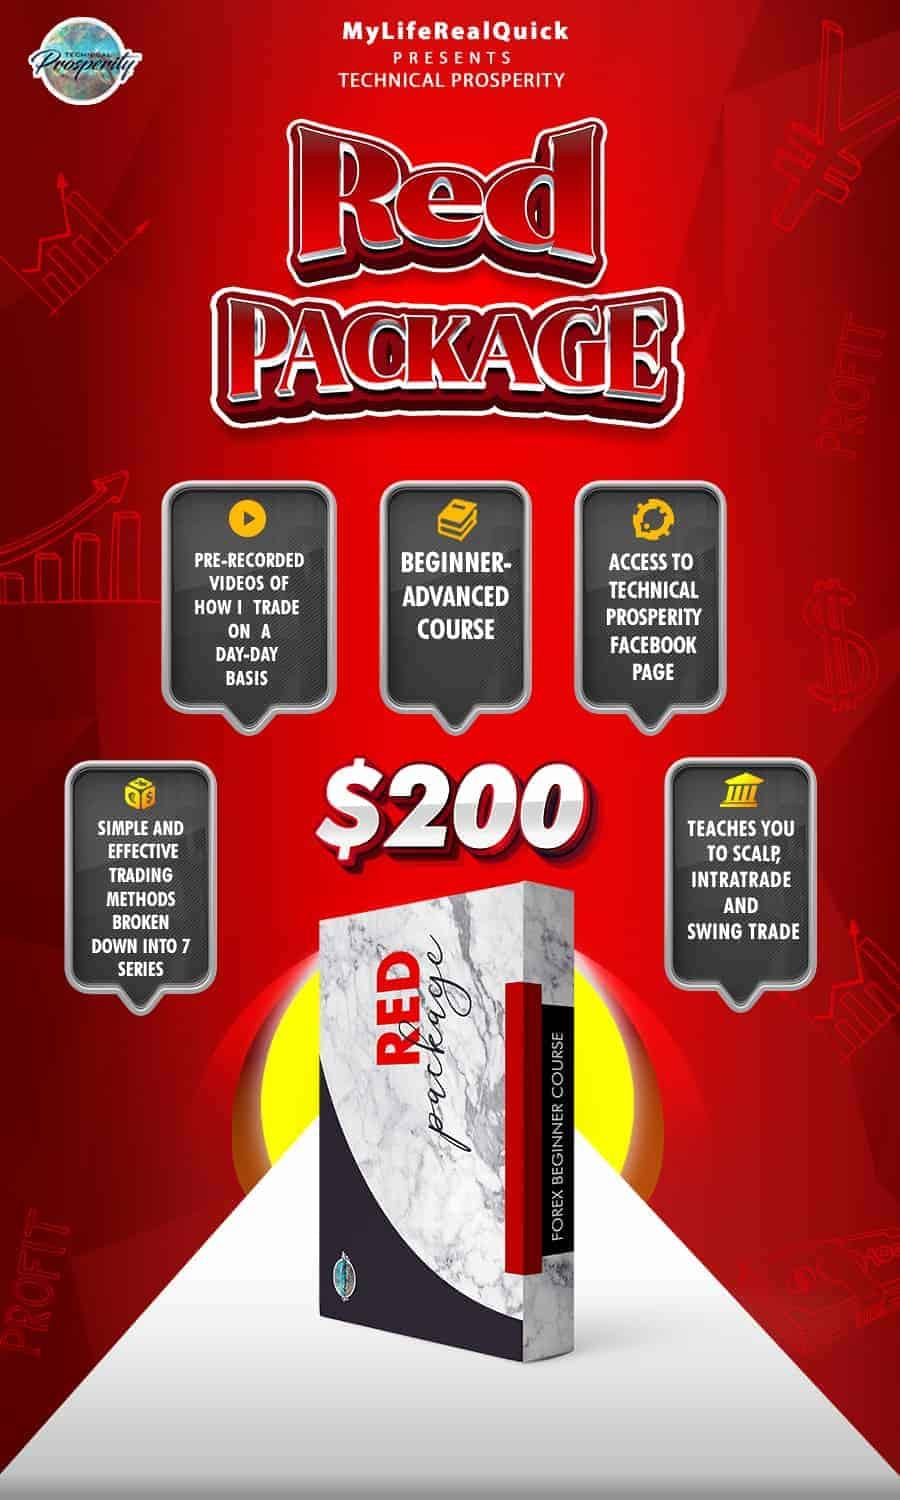 Red Package by Technical Prosperity